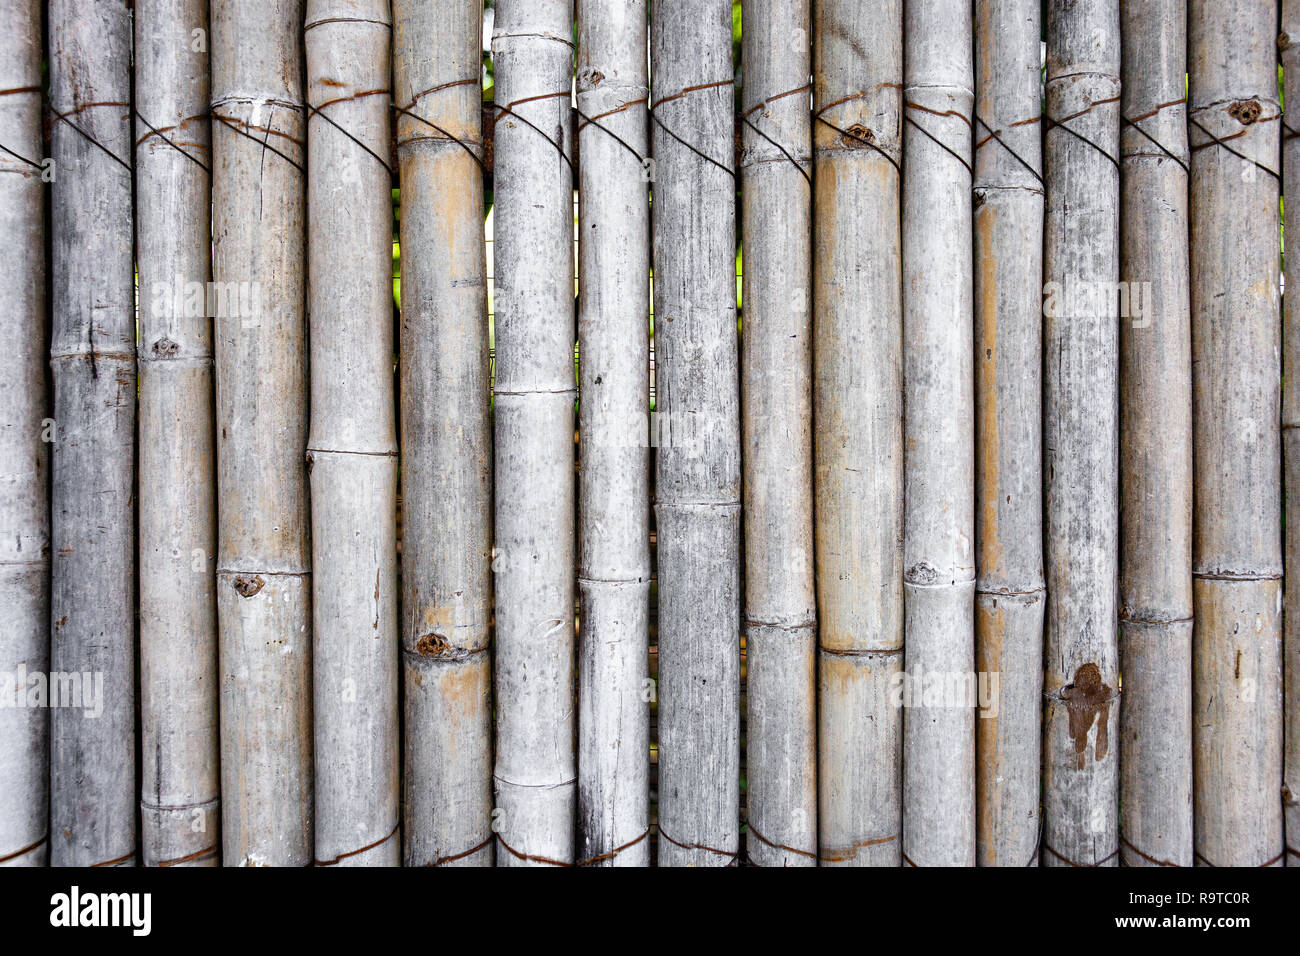 Old bamboo fence in the garden, Cozy decorating idea for patio, balcony for gardening. - Stock Image